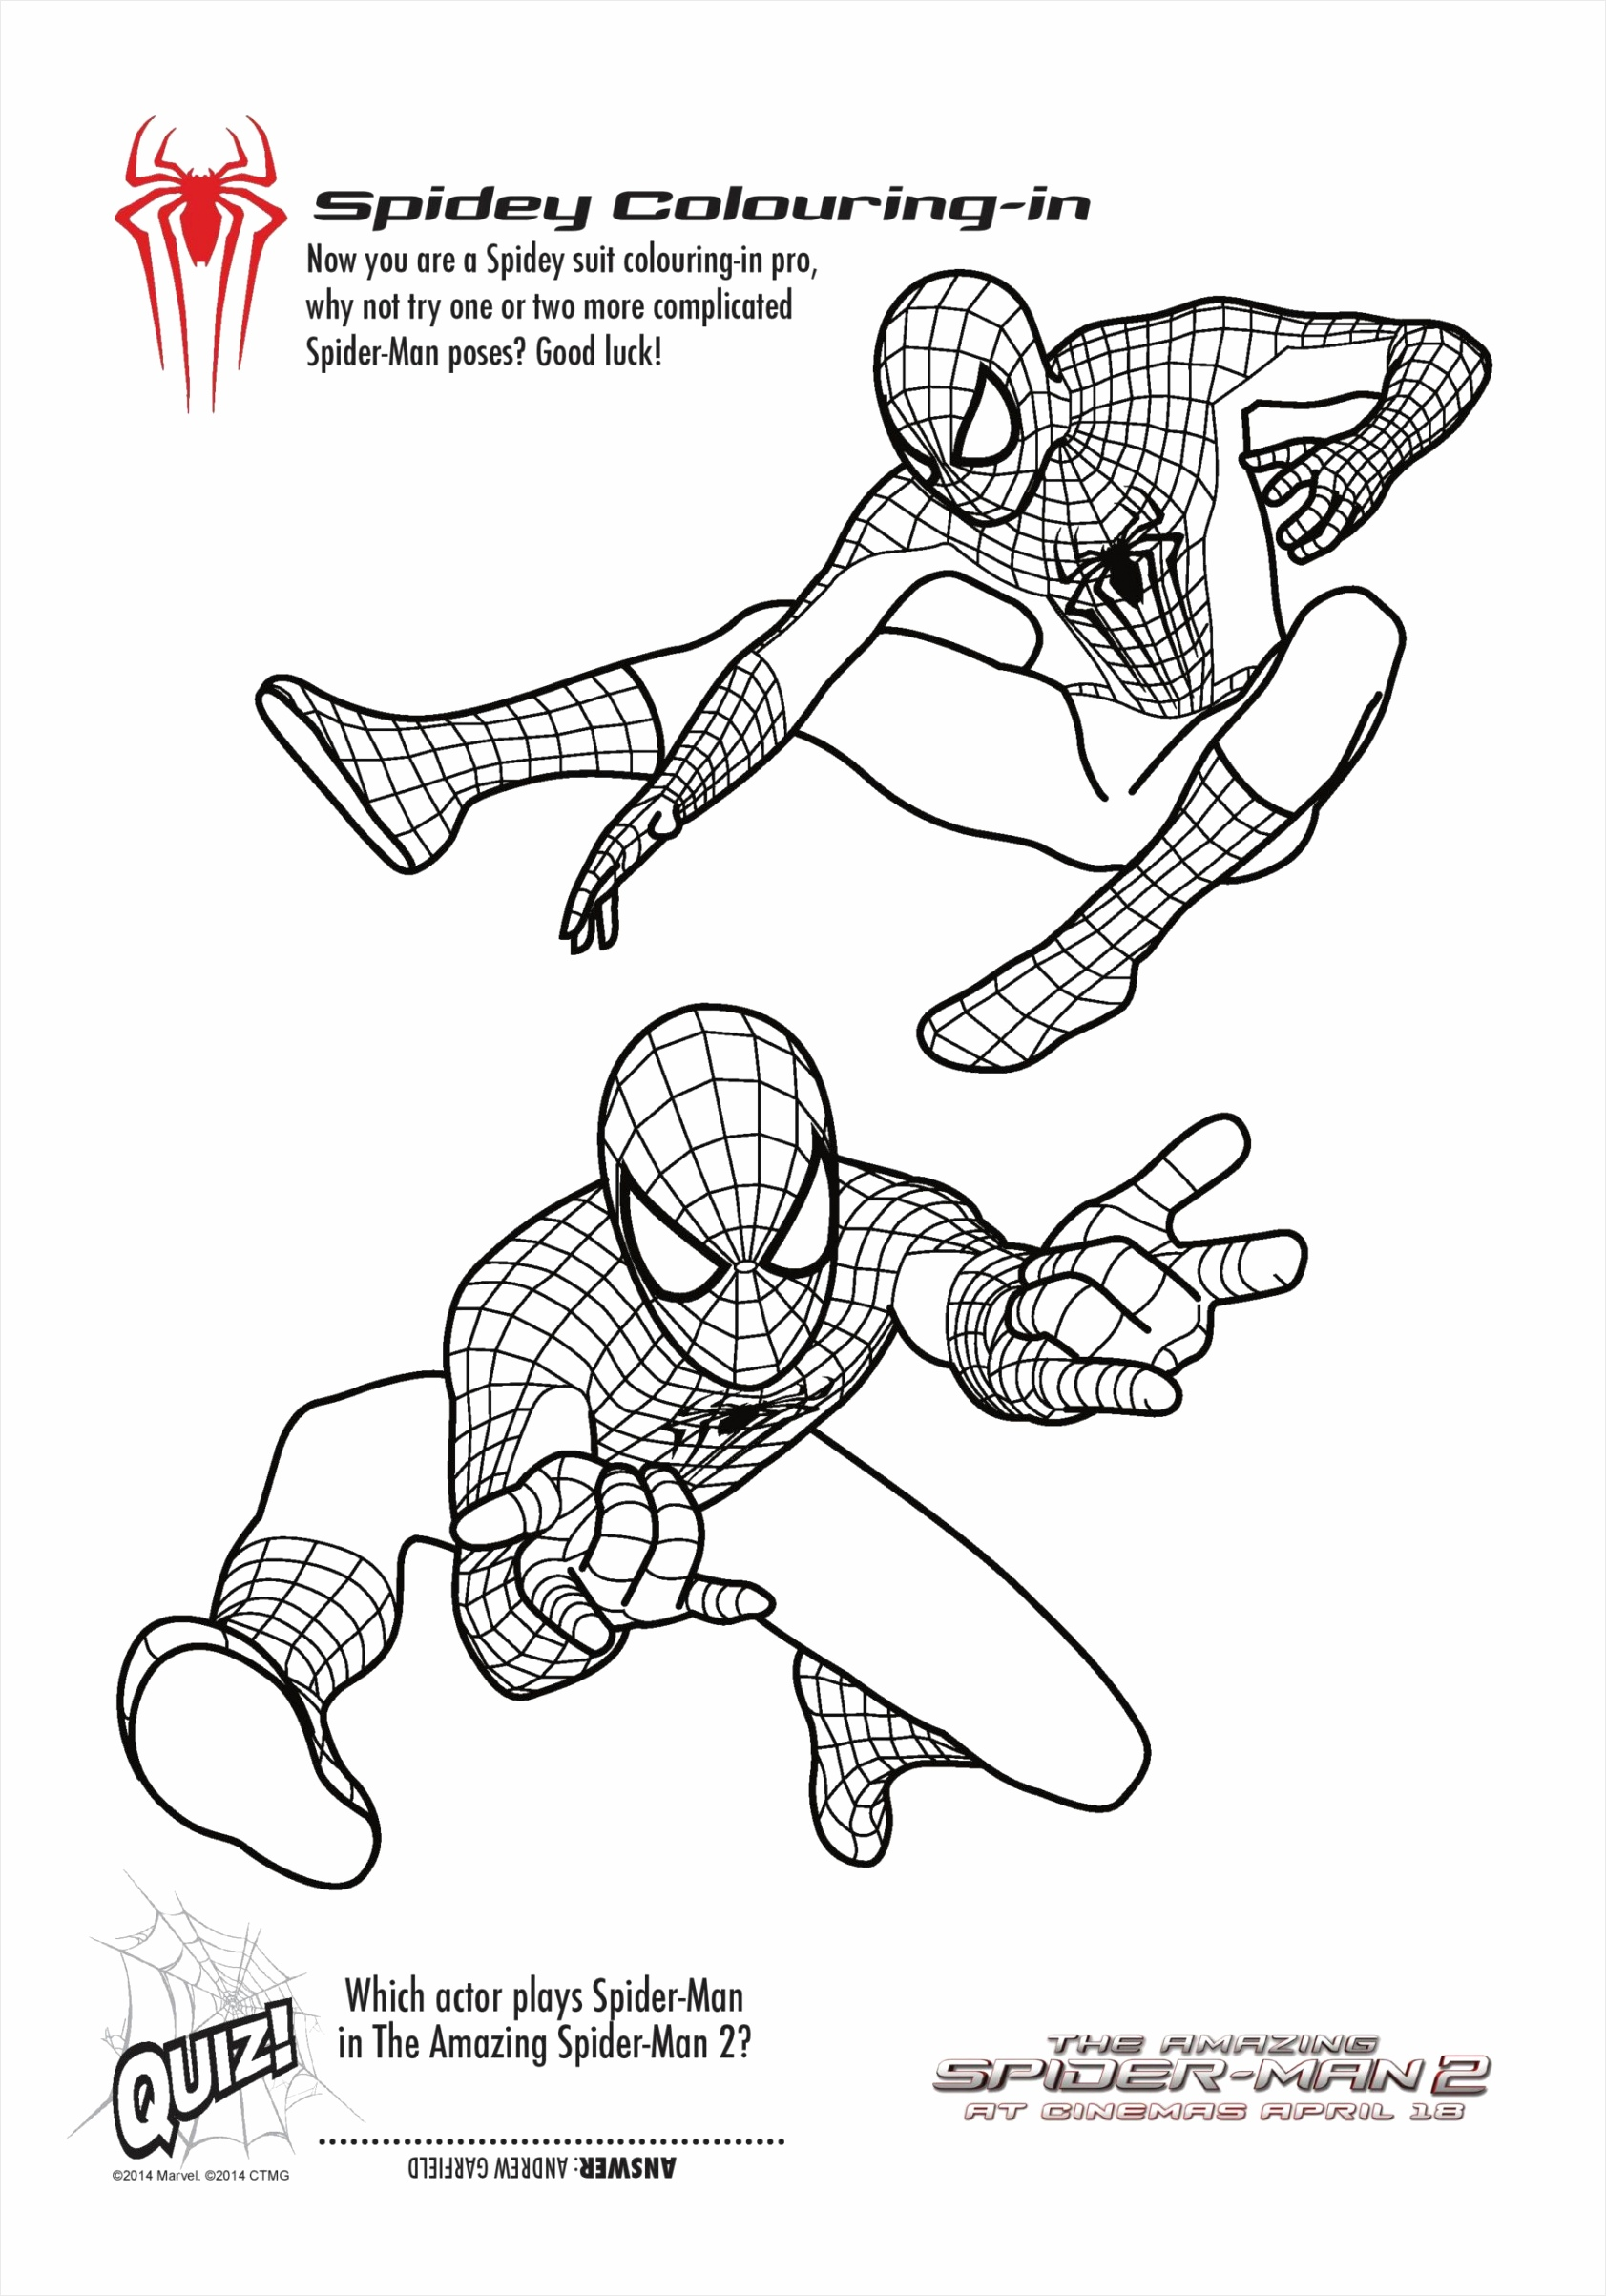 spiderman coloring pages coloringgese printable colouring and activity sheets idee kleurplaat vliegtuig peuter character awesome book of carnage booke to for scaled reguu